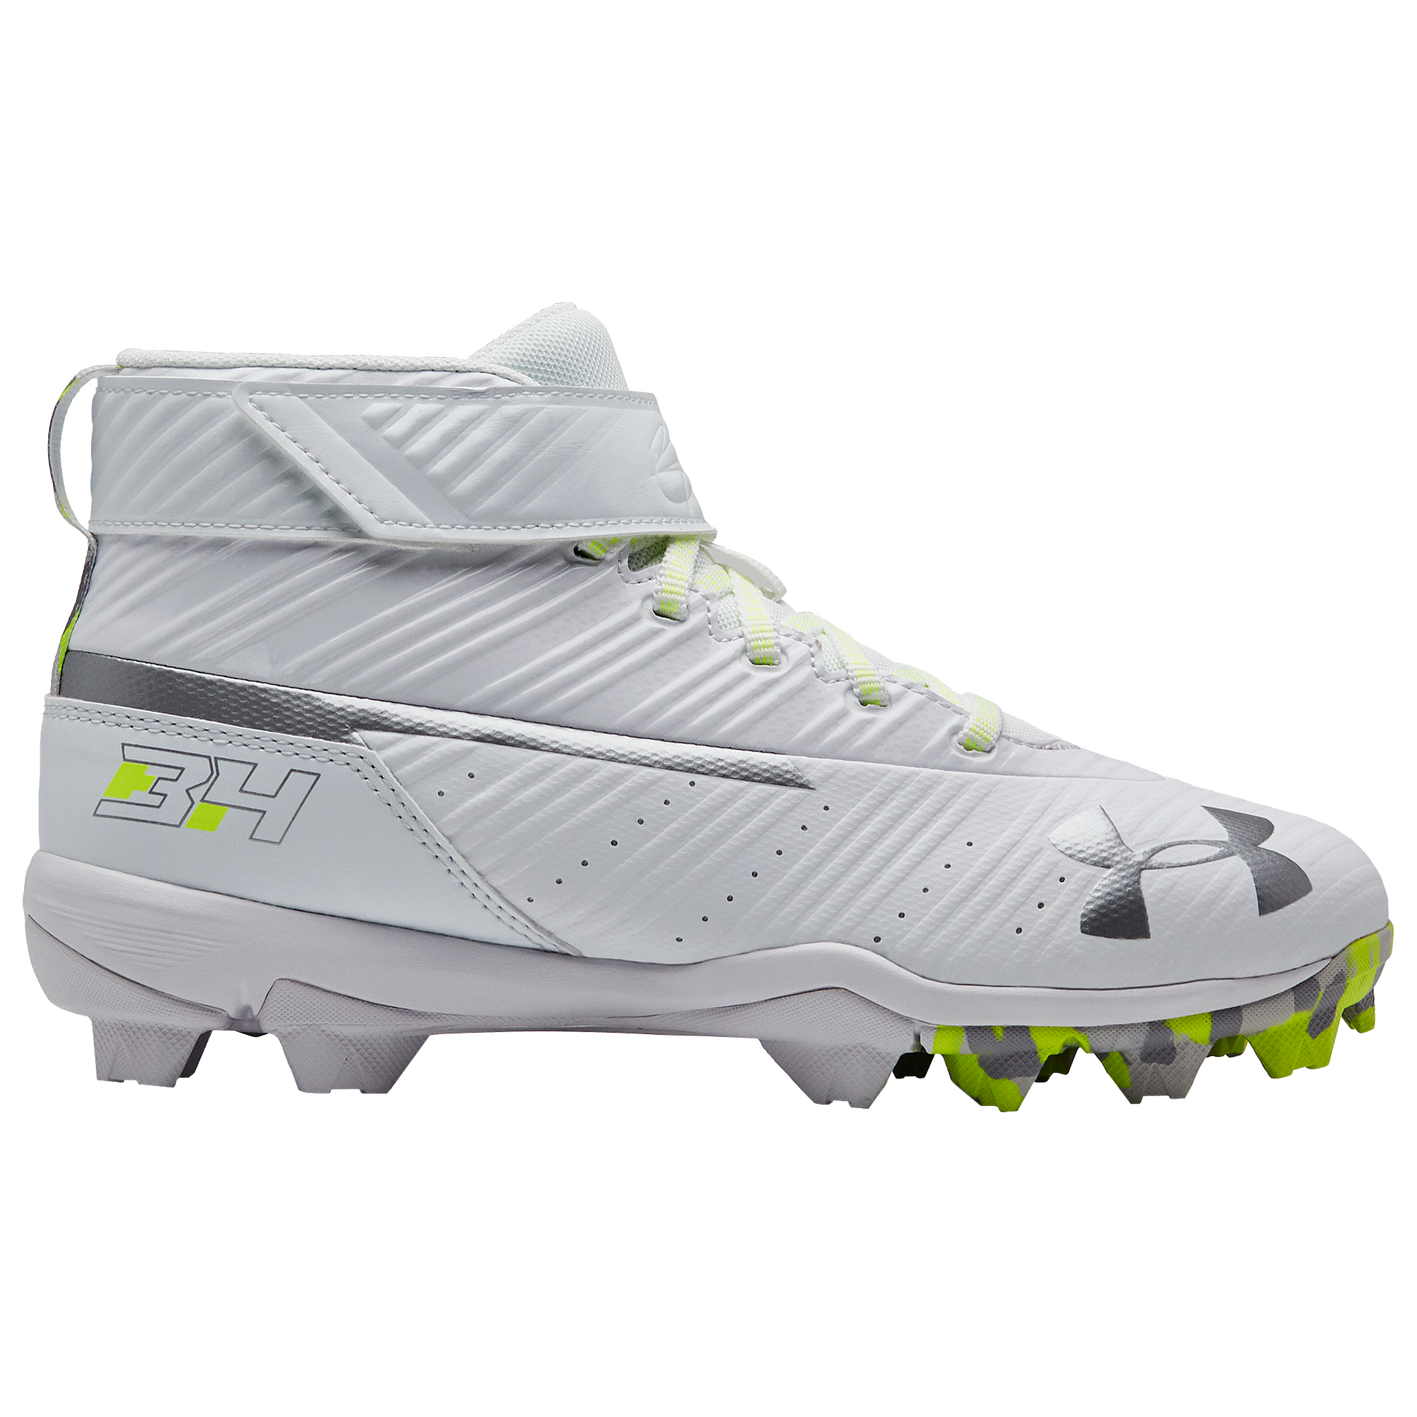 baaafe59f1e Under Armour Harper 3 RM Jr - Boys  Grade School - Baseball - Shoes ...